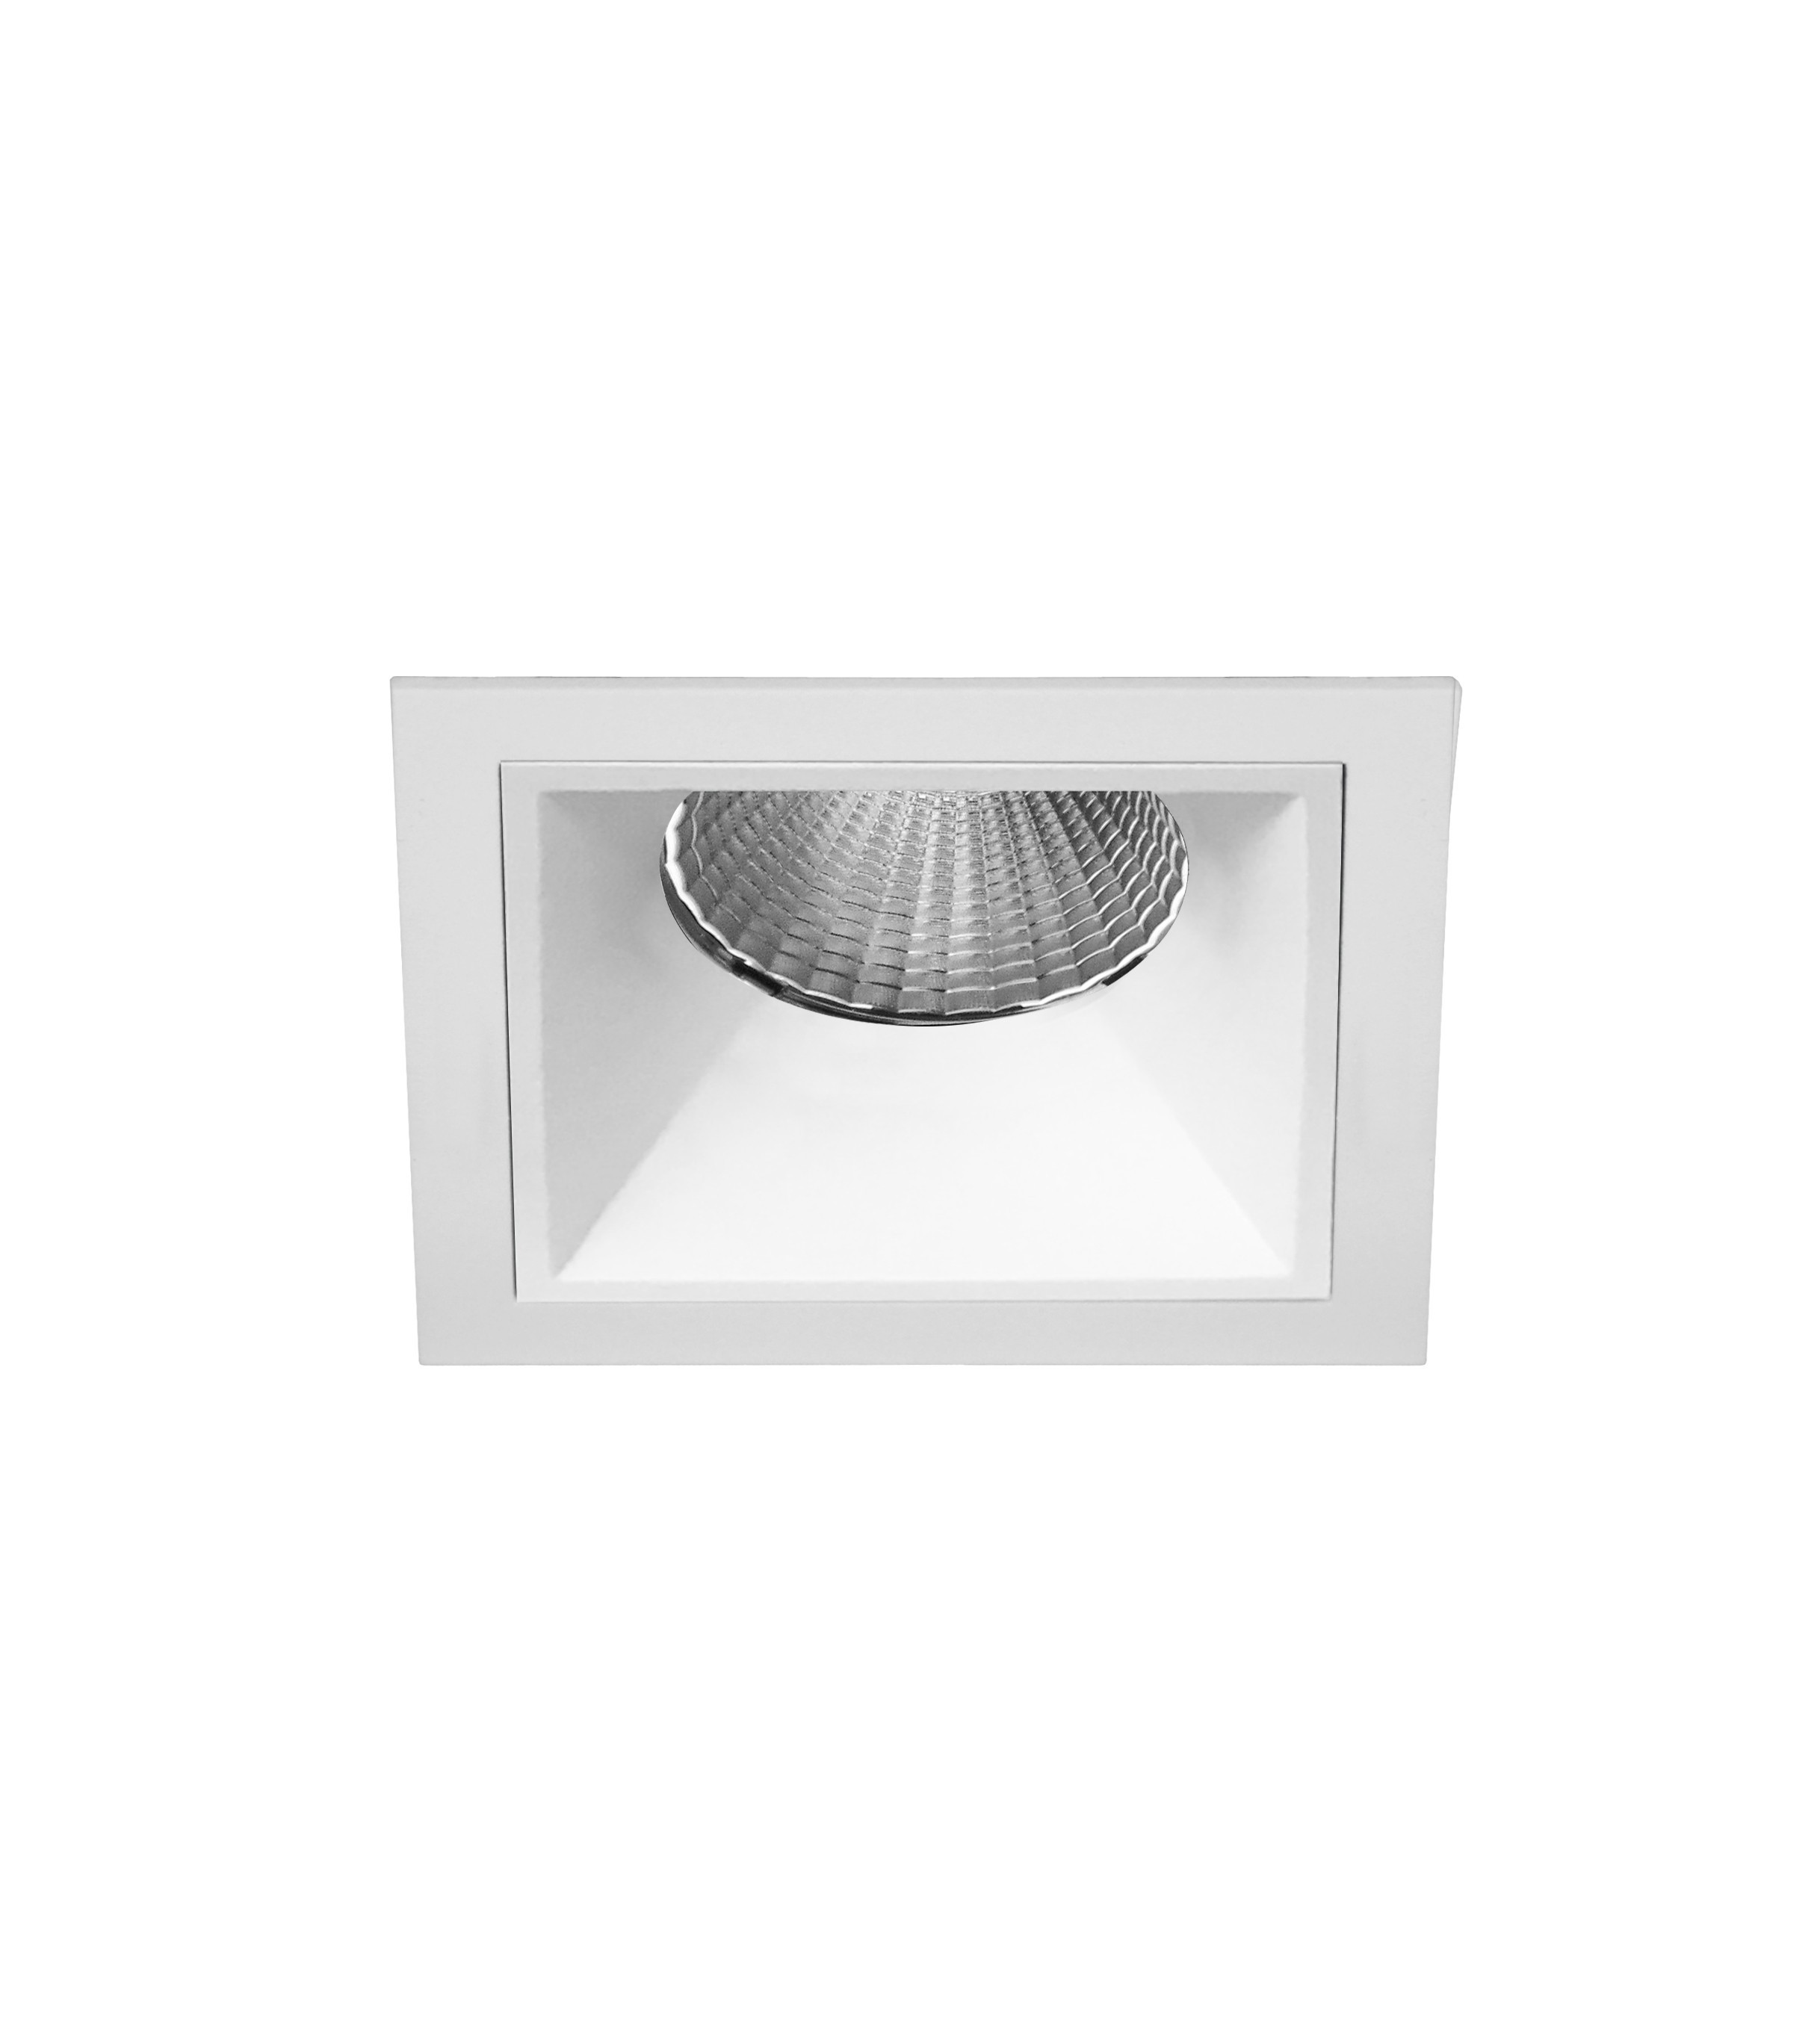 "2.5"" Shallow Square Flanged Fixed Downlight"